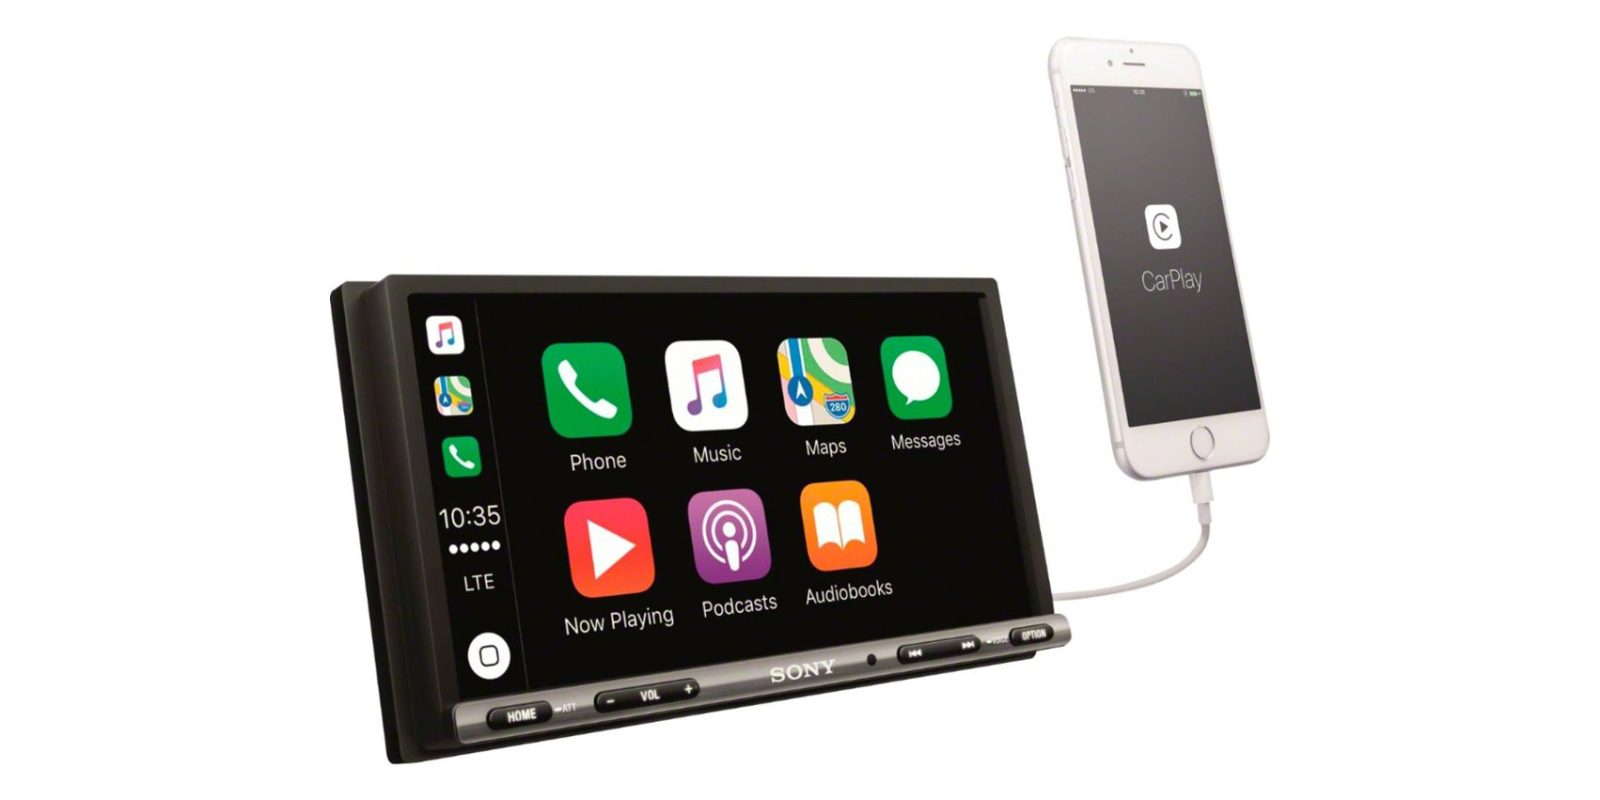 Thursday deals: Sony CarPlay Receiver $300, latest iPad Air $55 off, and more